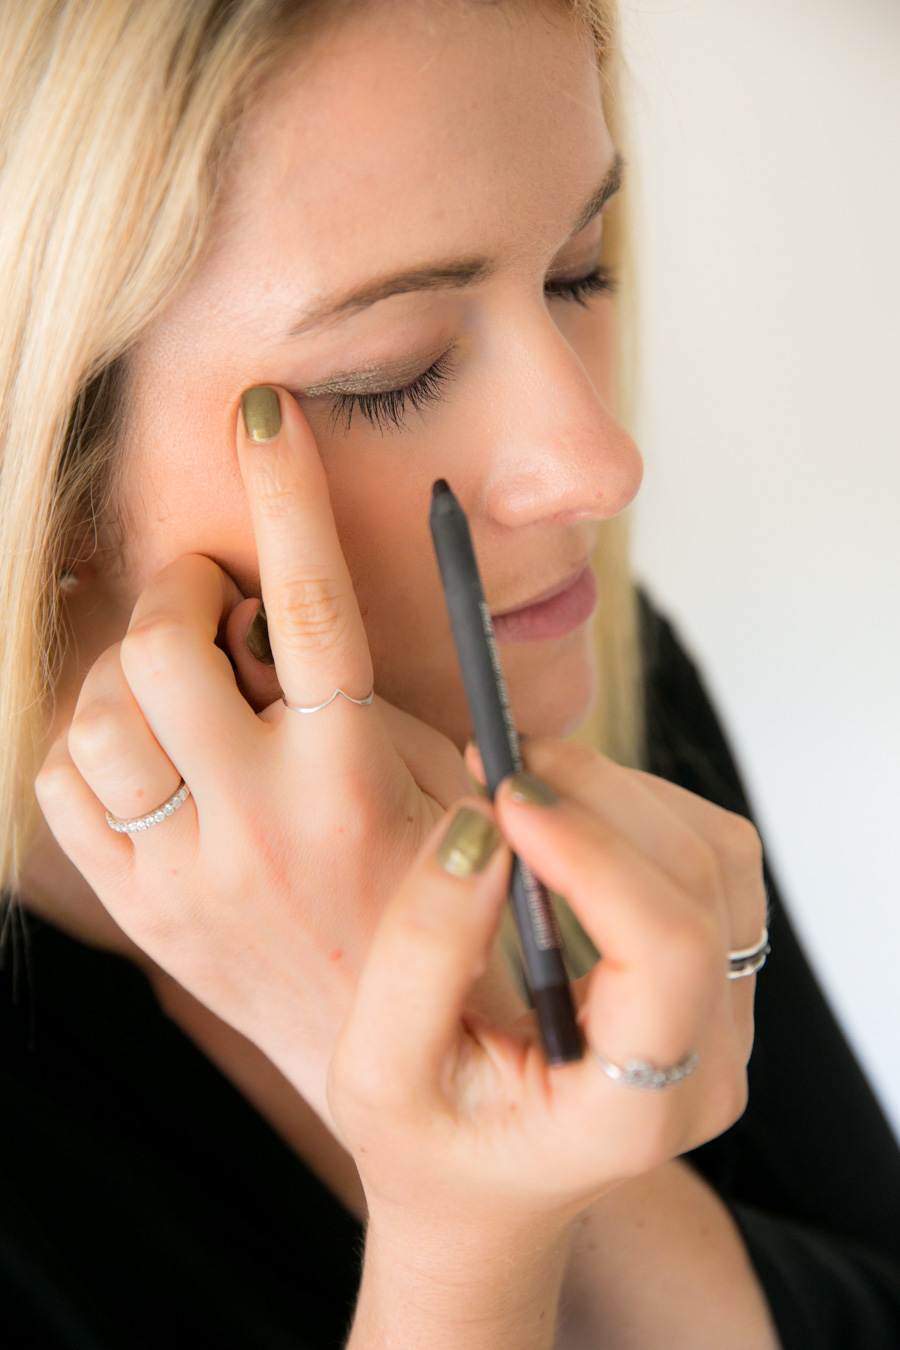 Best Pencil Eyeliner for Sensitive Eyes